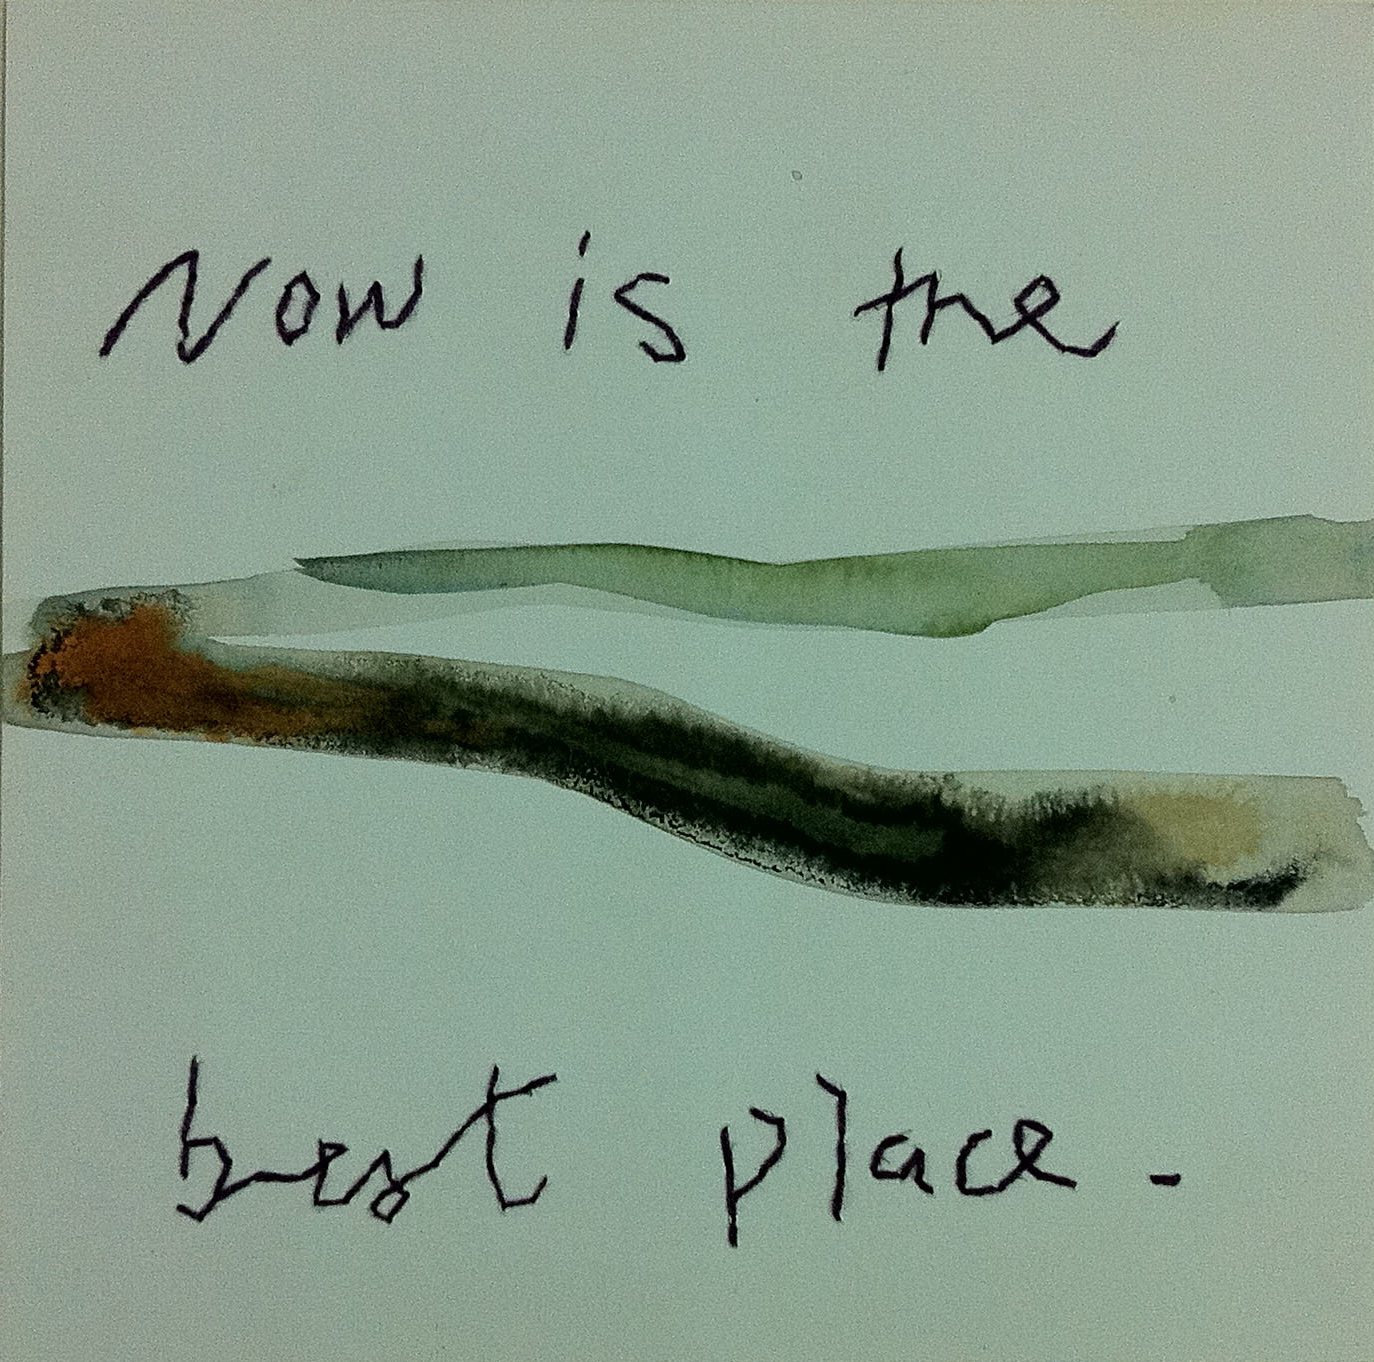 Now is the best place